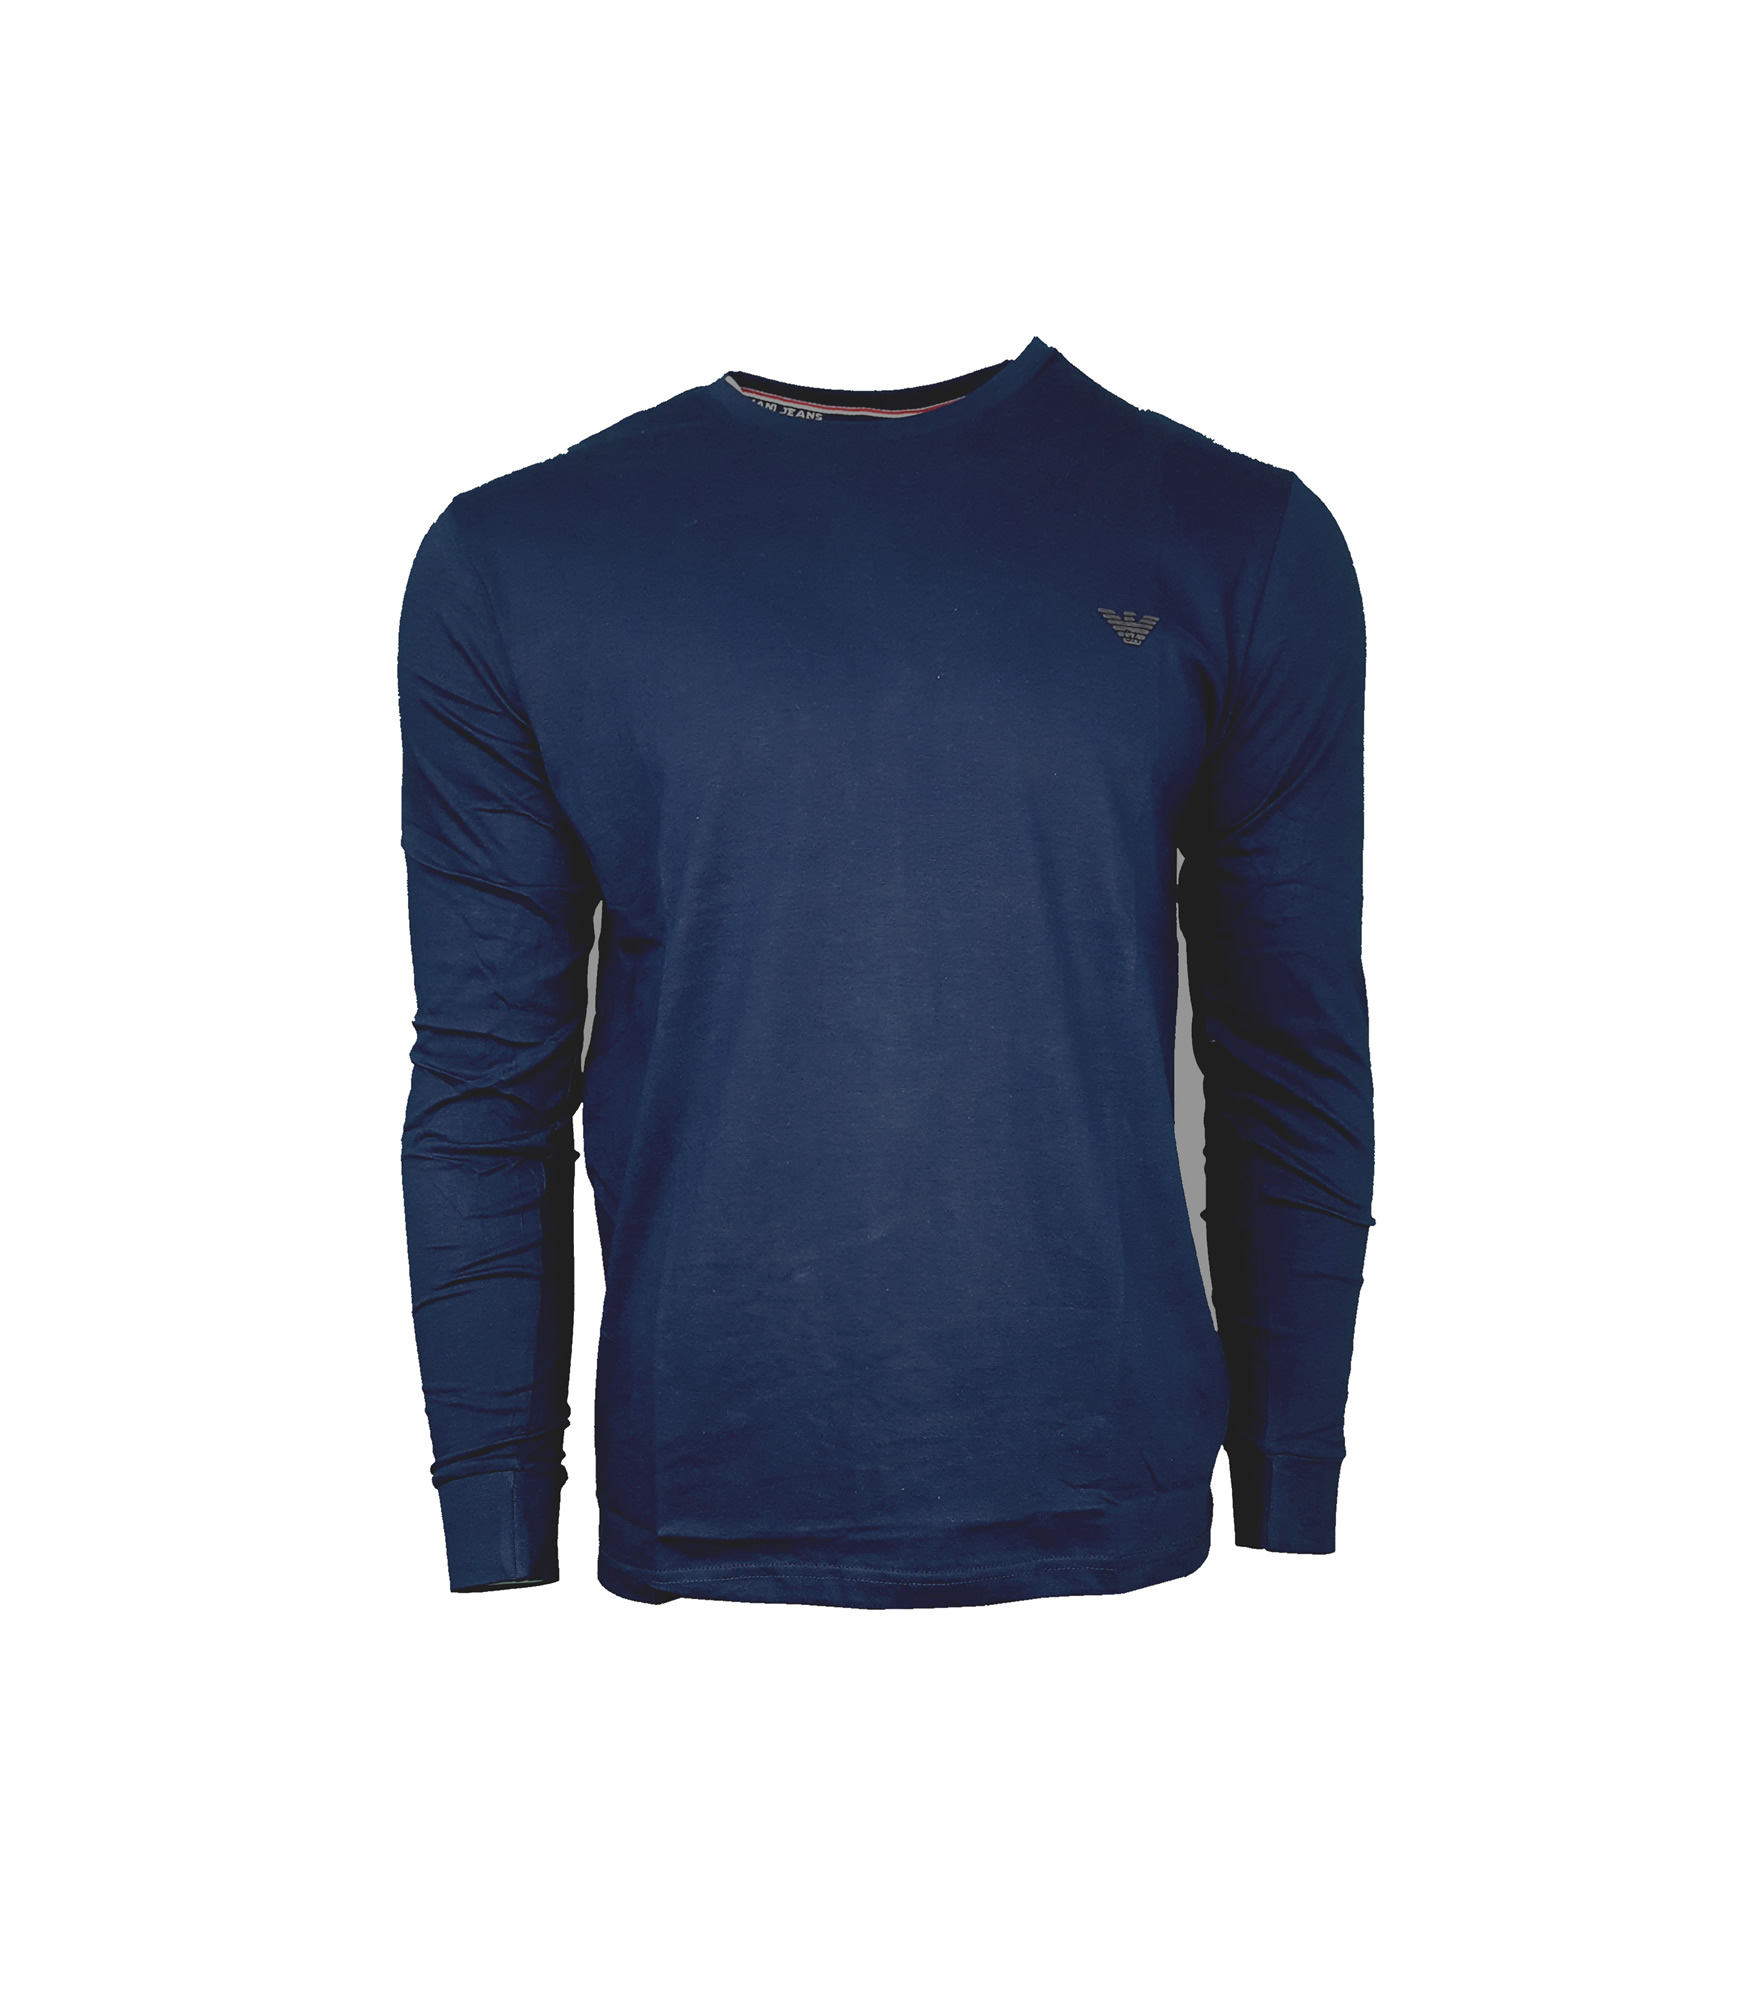 cfc3759935 Armani Jeans Long Sleeve Crew T-Shirt. Small Eagle in Navy Blue | INTOTO7  Menswear